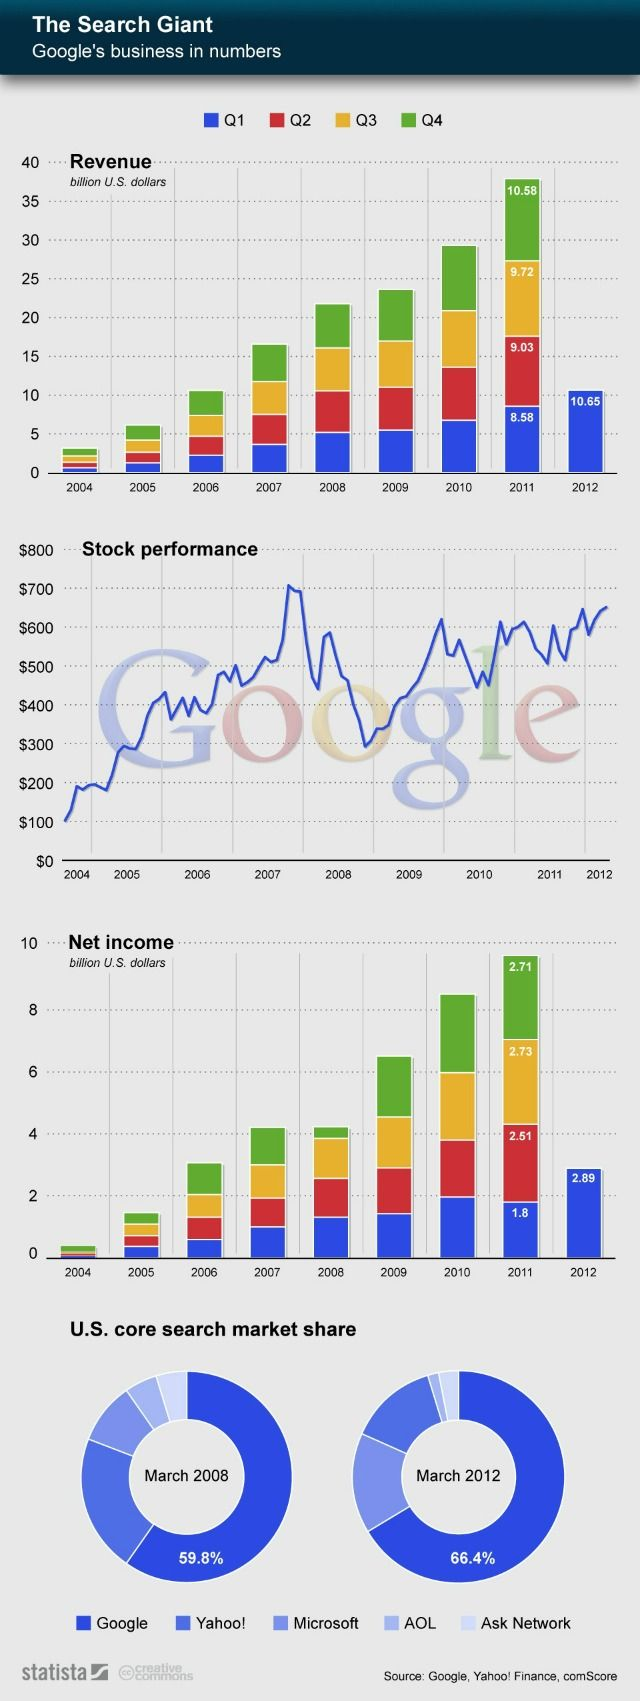 Google's growth story